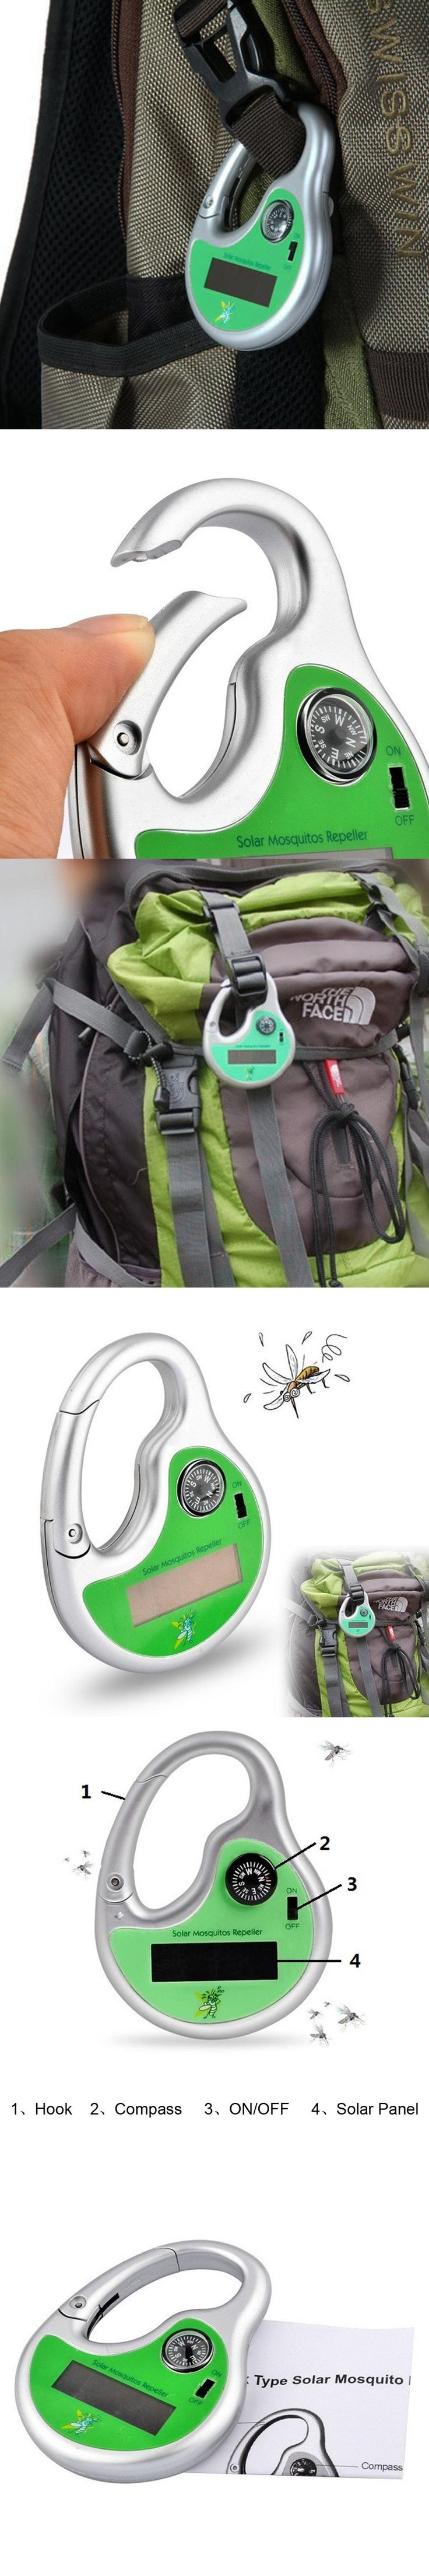 mosquito repelente de mosquito mosquito repellent ultrasonic mosquito repeller Hook Type with Compass